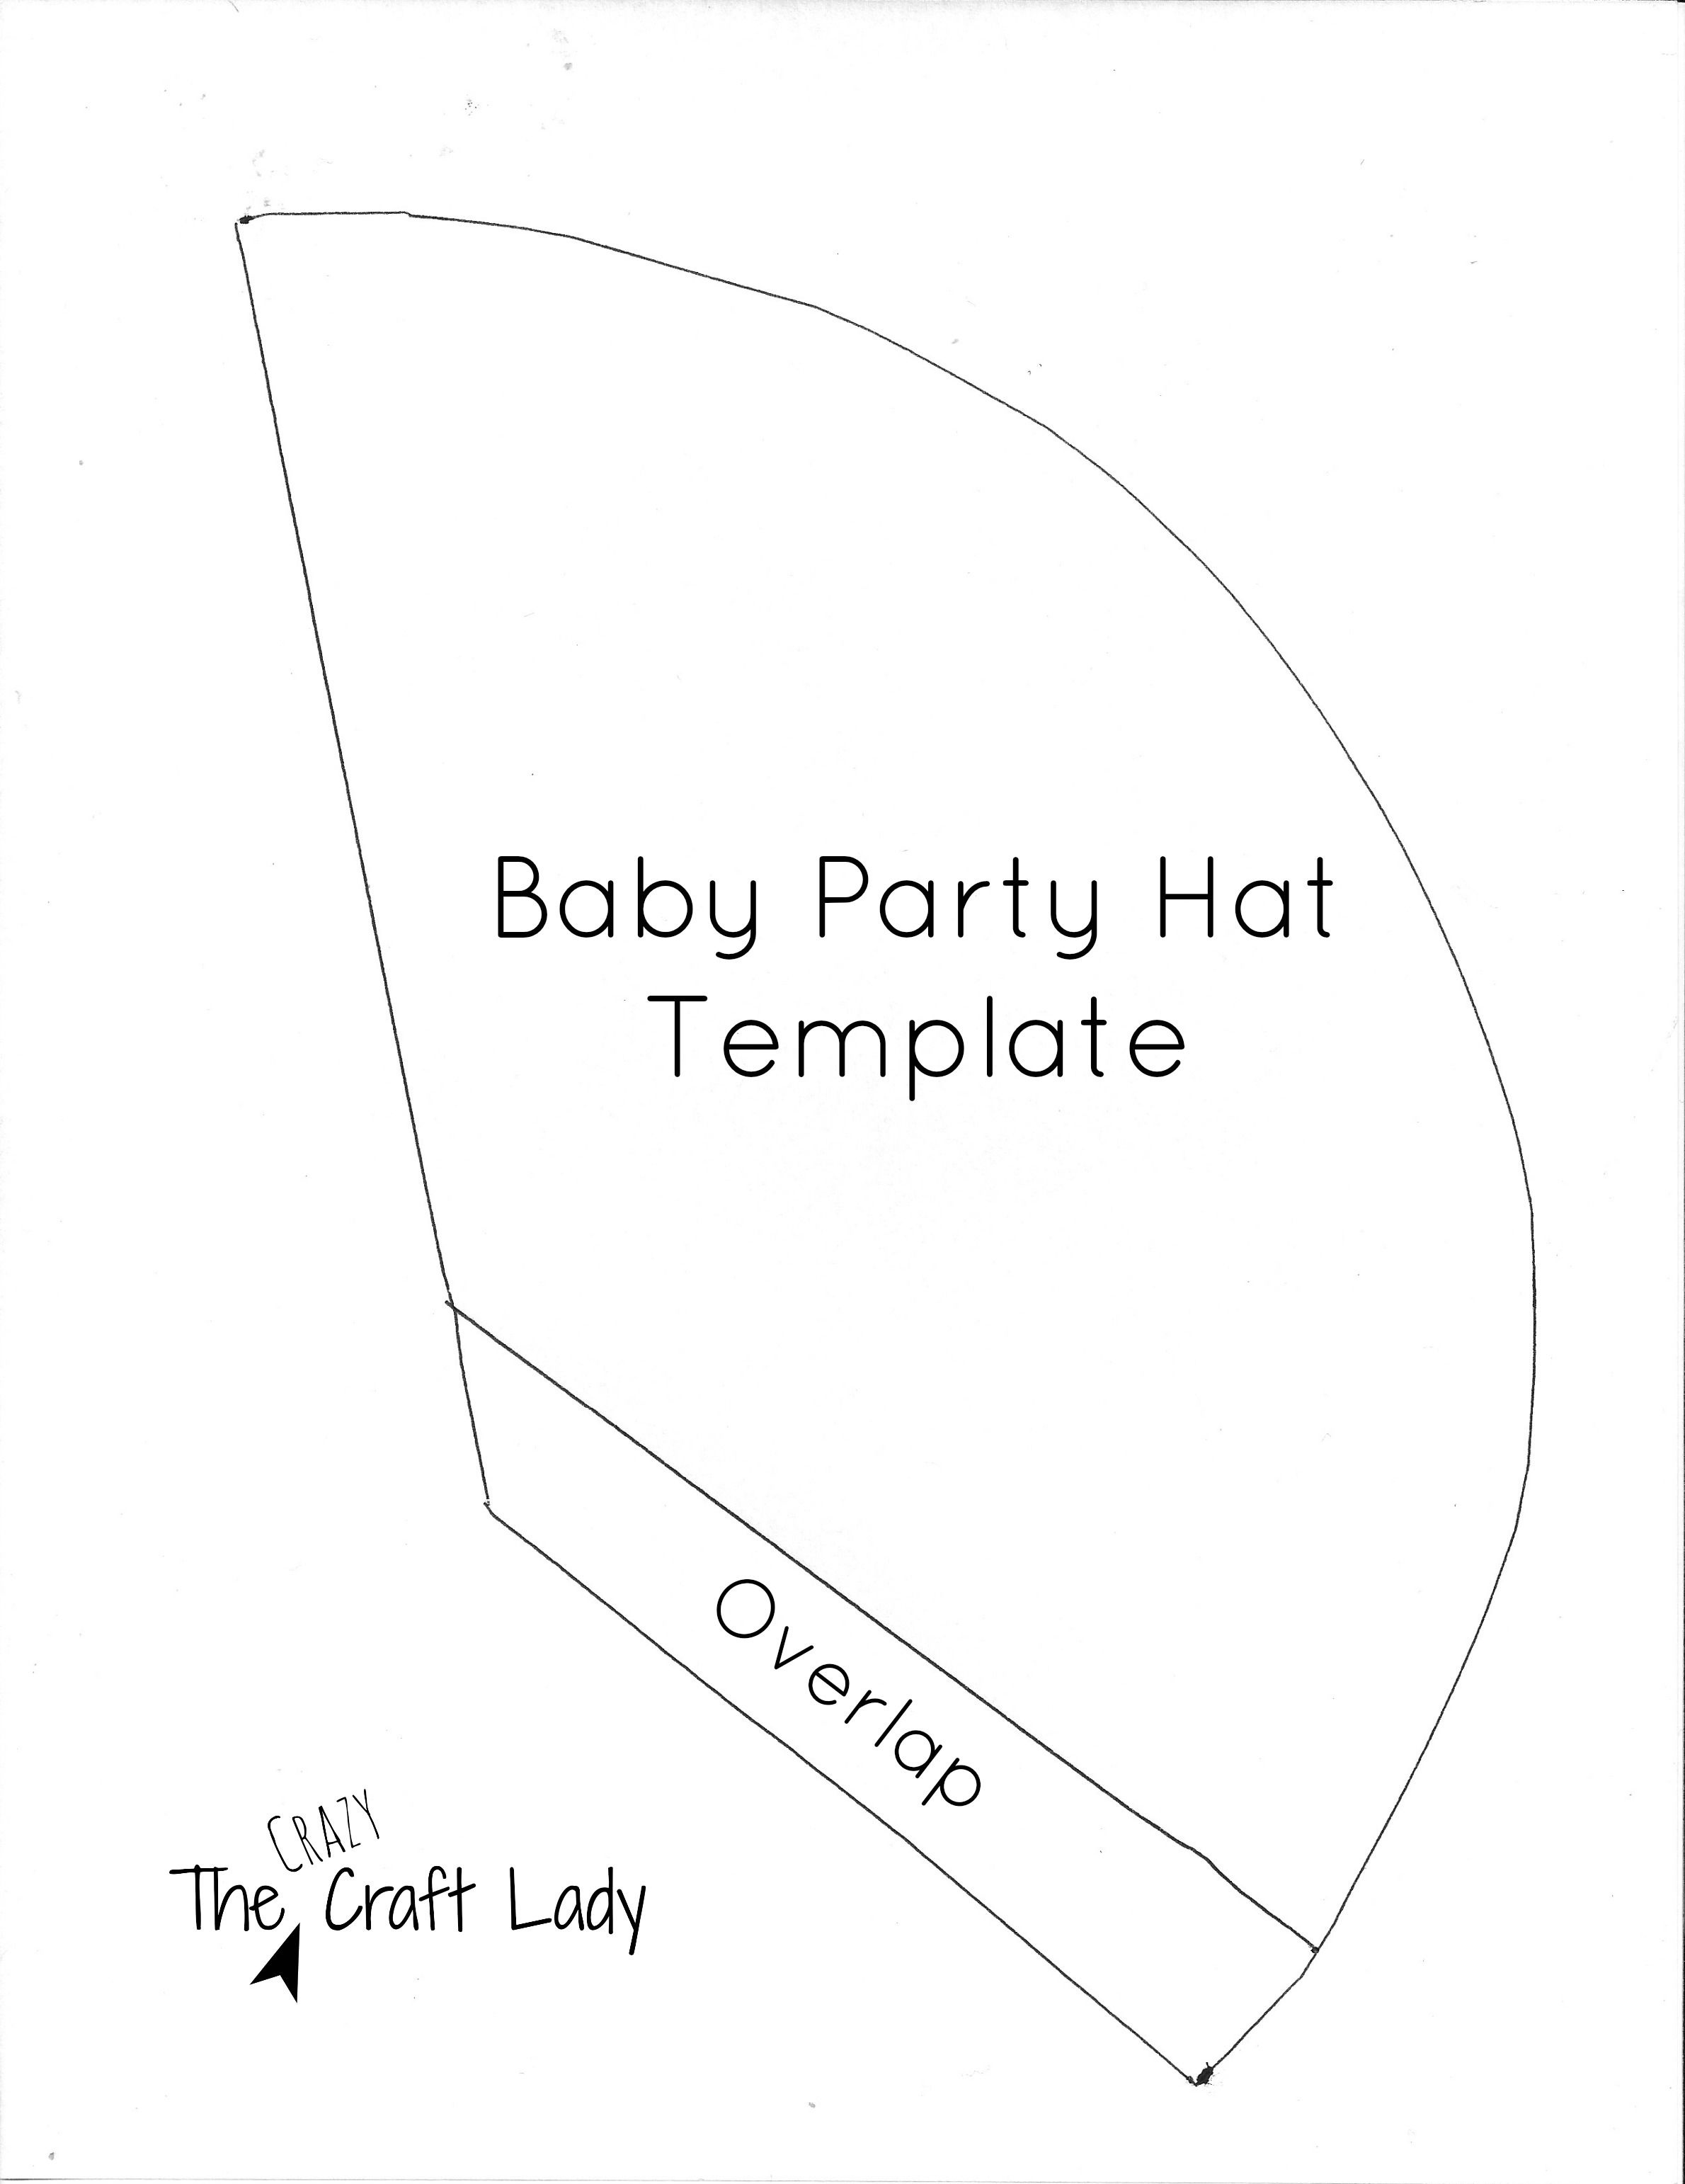 Baby Party Hats And Free Printable Template | Collin | Diy Birthday - Free Printable Birthday Hat Template